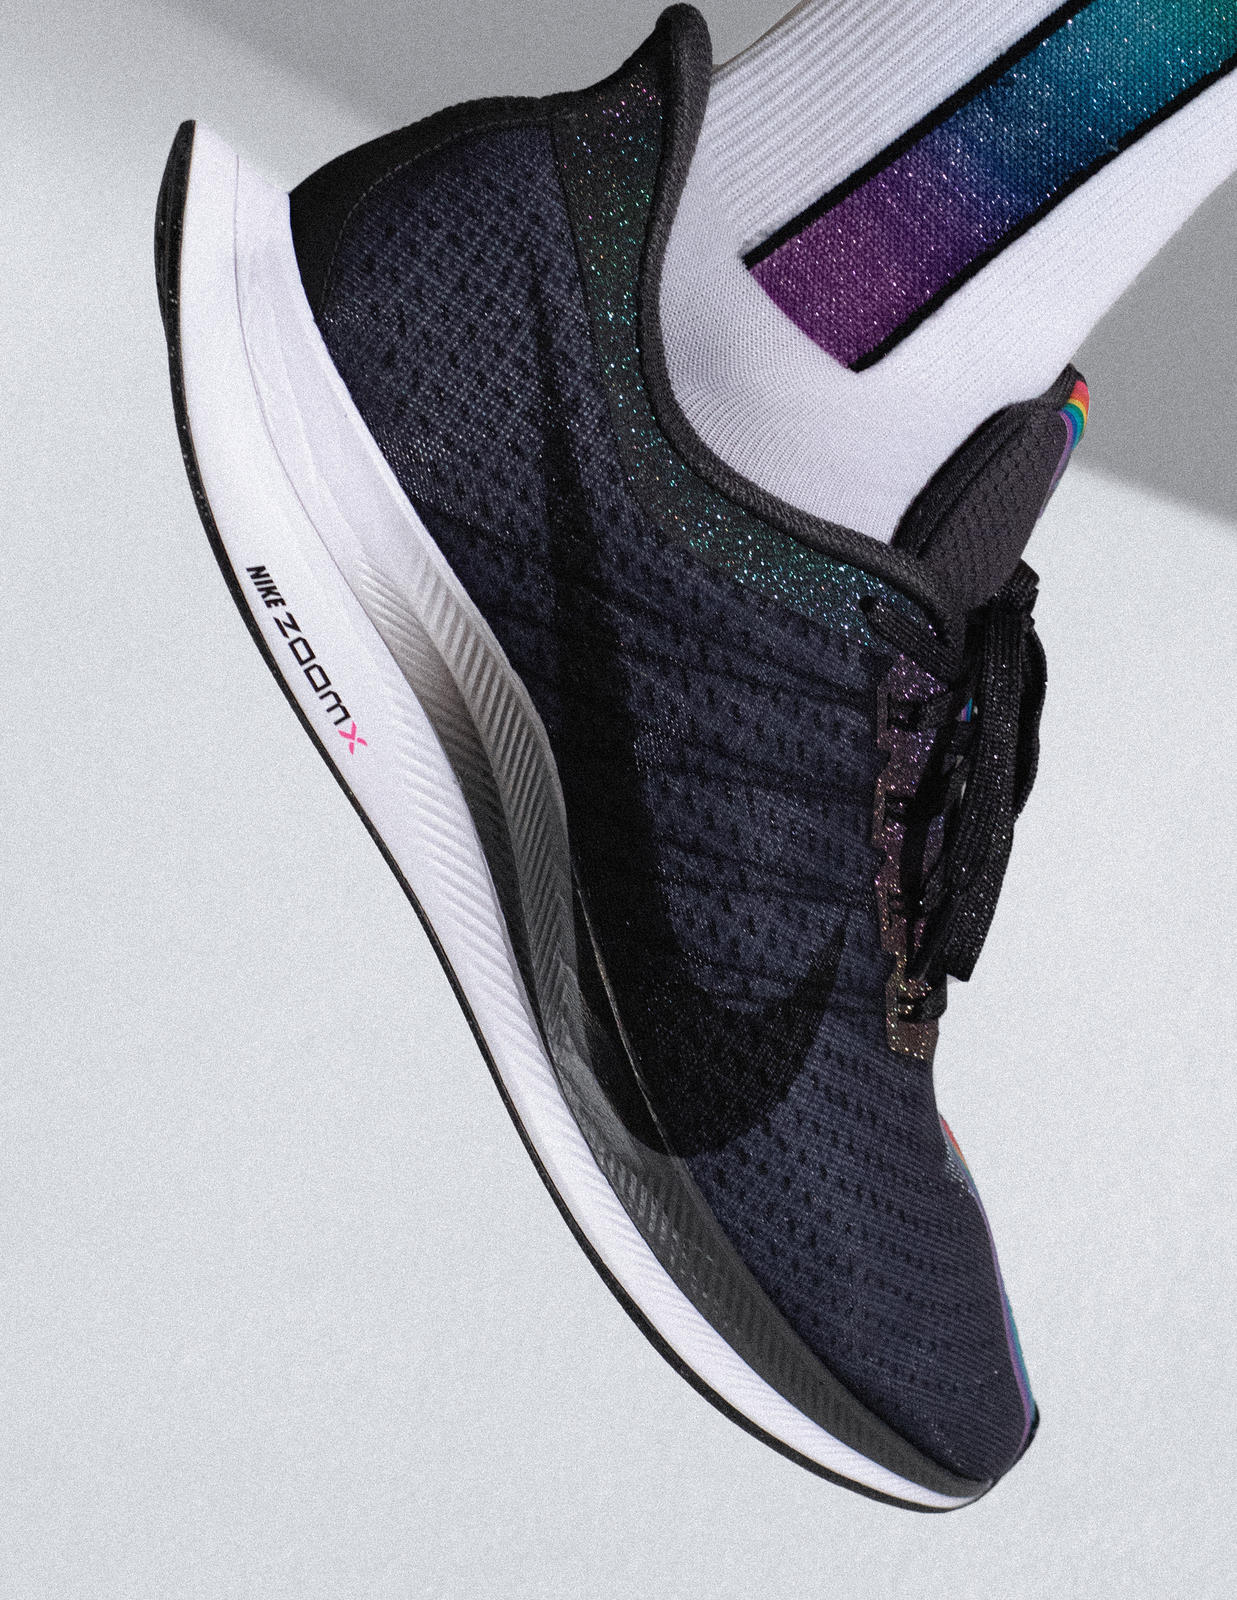 Nike-BETRUE-2019-Collection-20_88118